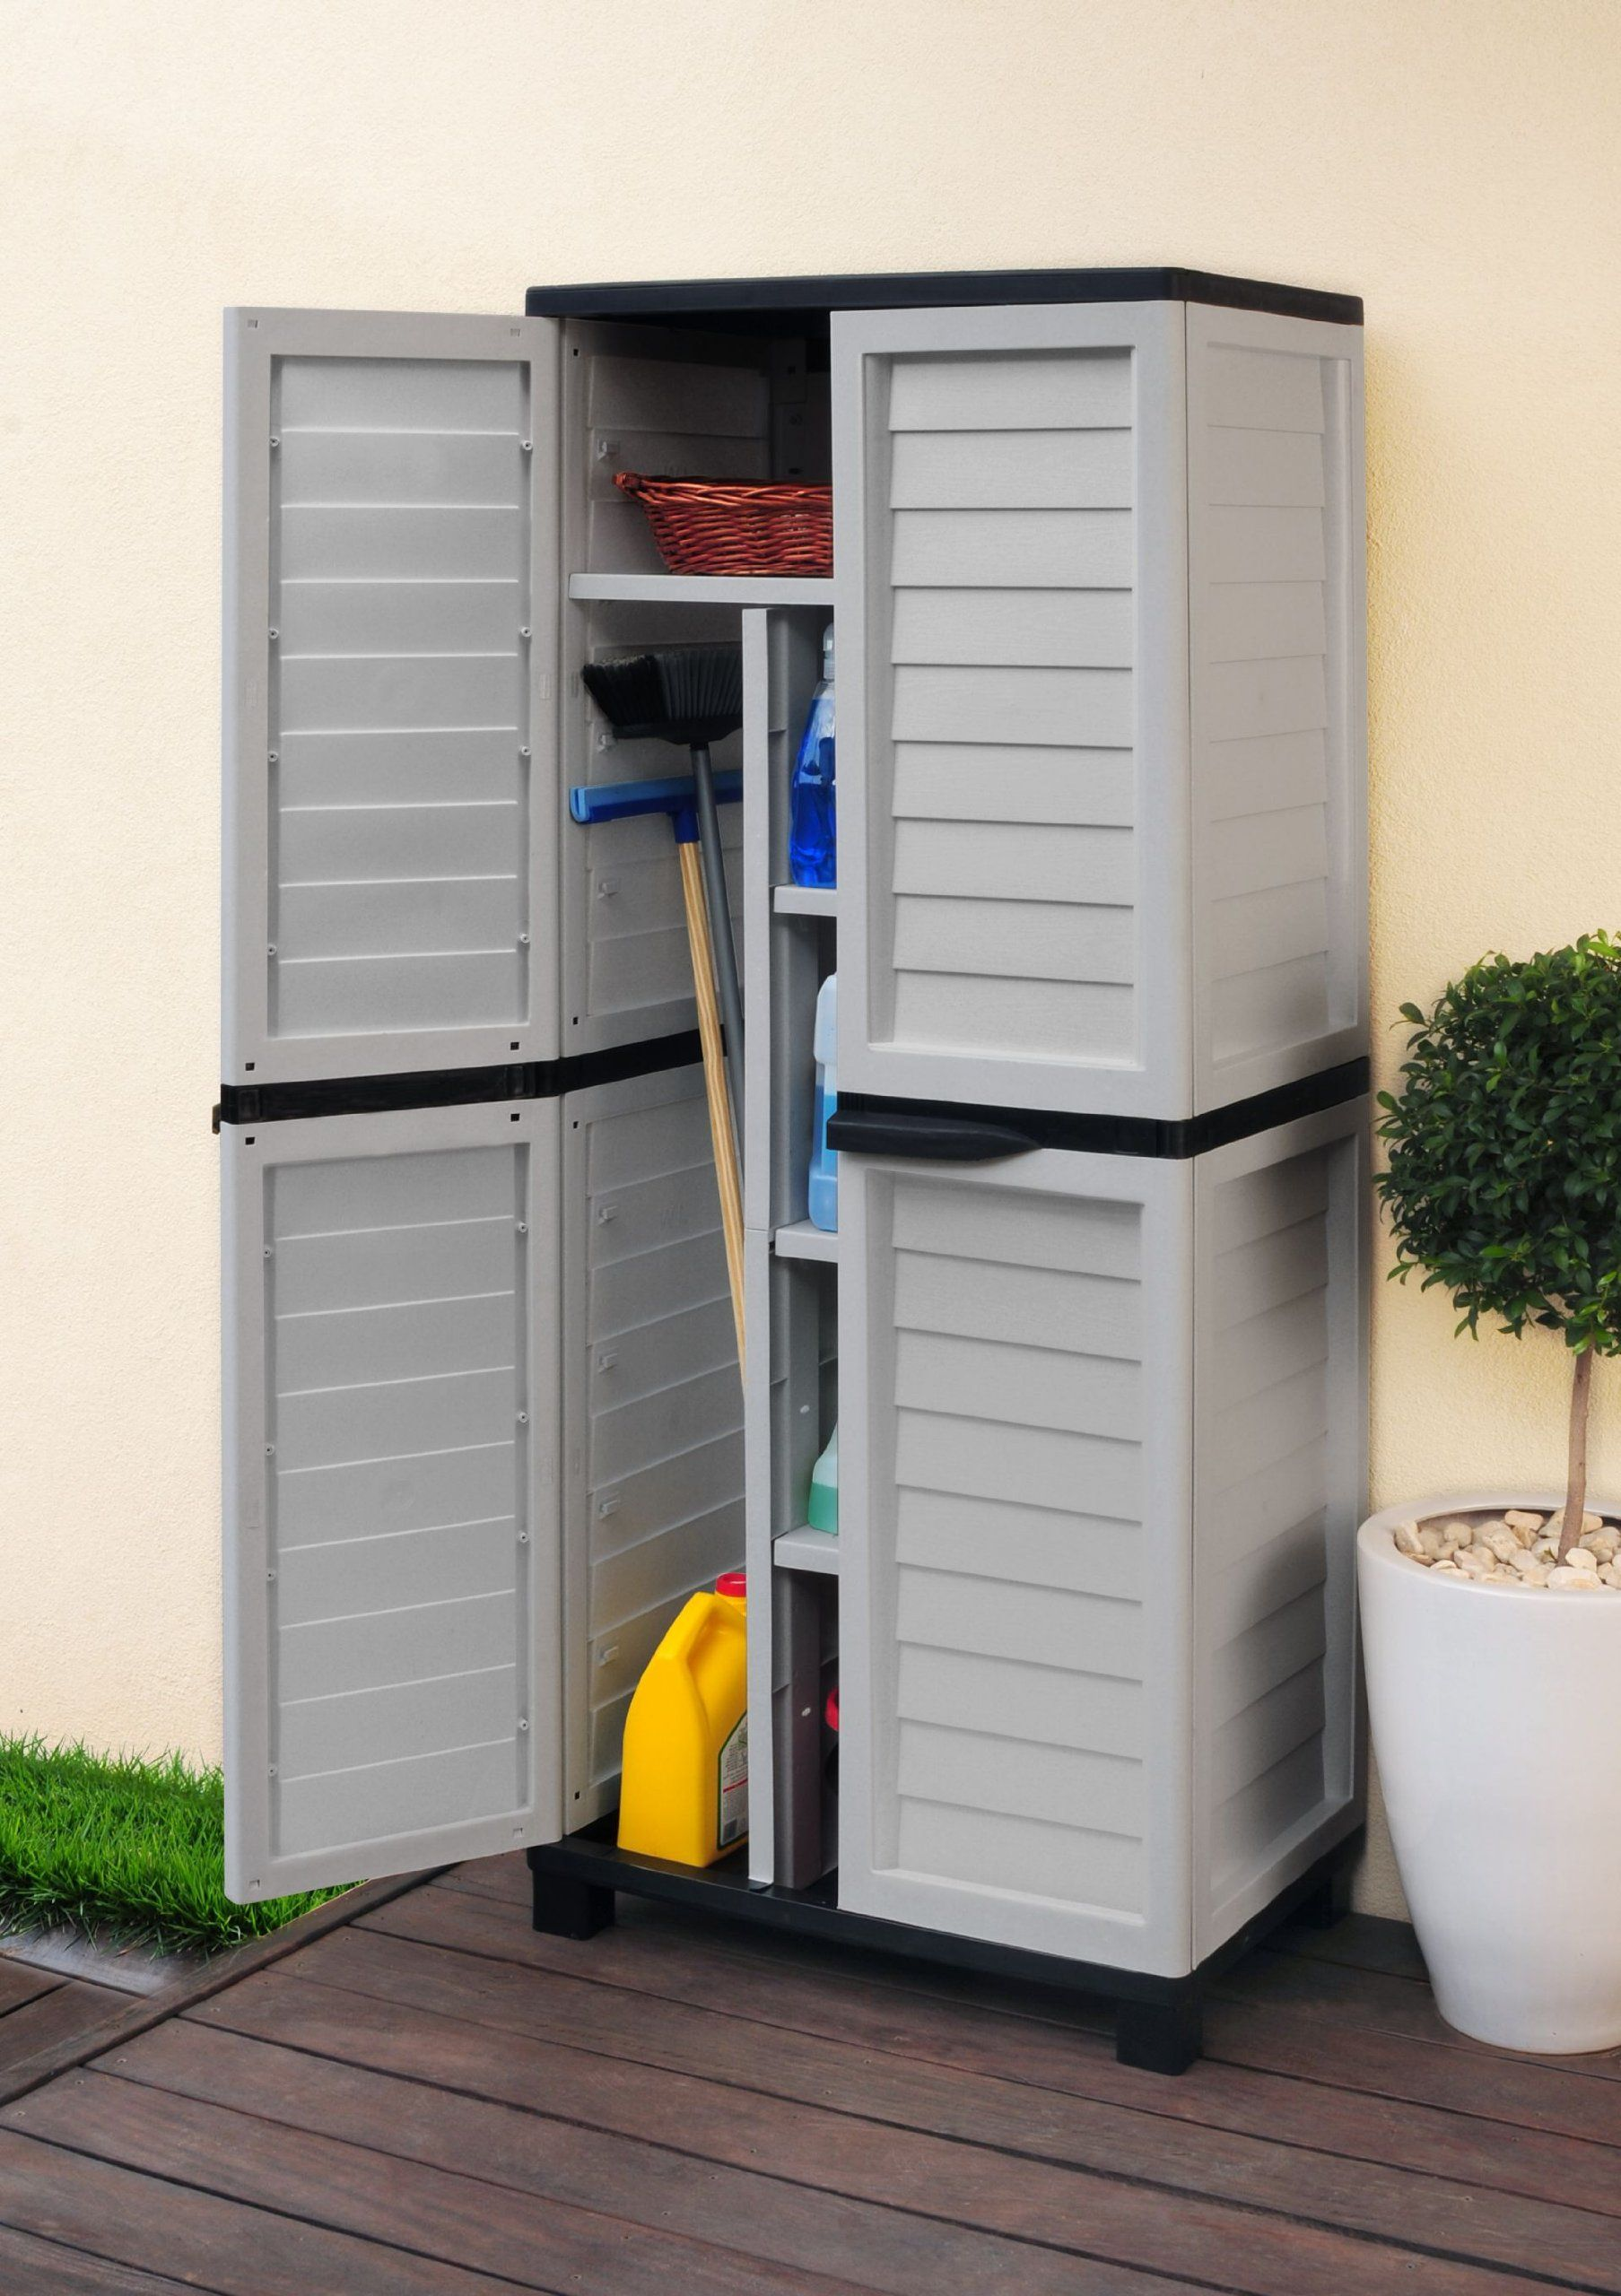 besenschrank silber grau schwarz universal schrank garten garagenschrank f drinnen und. Black Bedroom Furniture Sets. Home Design Ideas